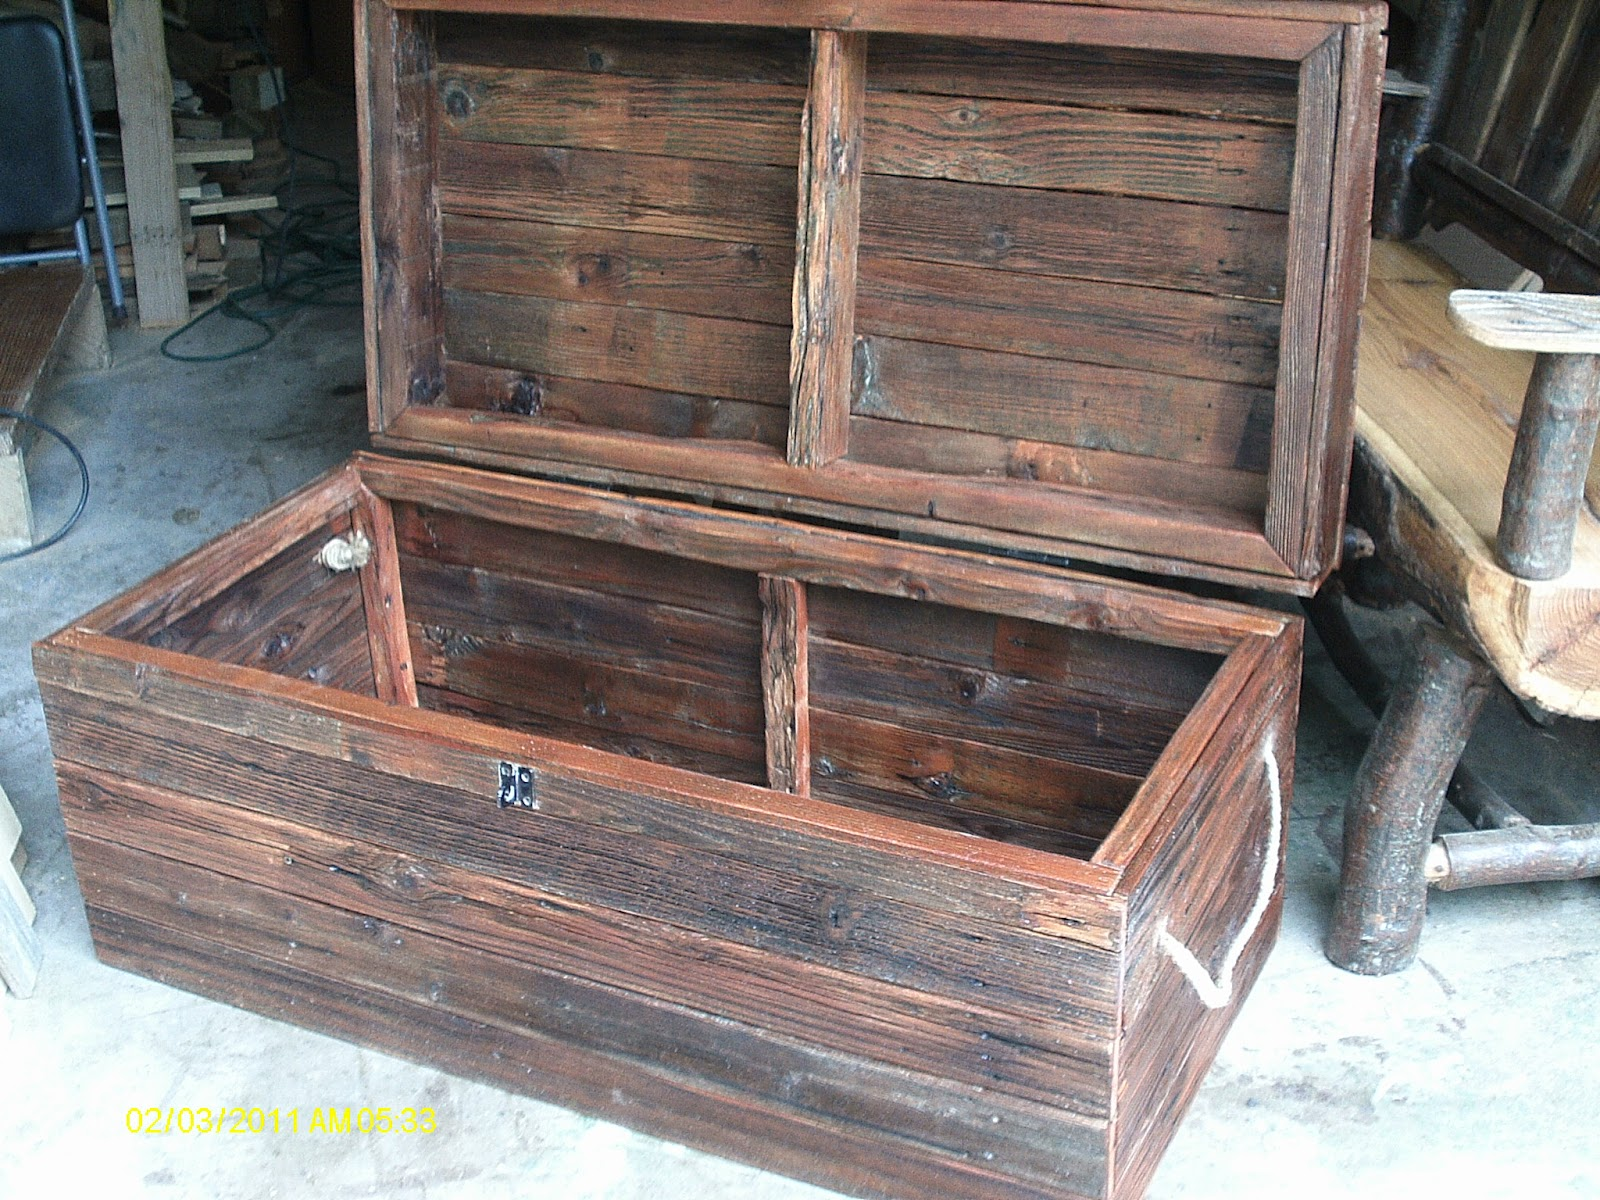 Handmade Rustic Log Furniture Reclaimed Fenceboard Chest Trunk